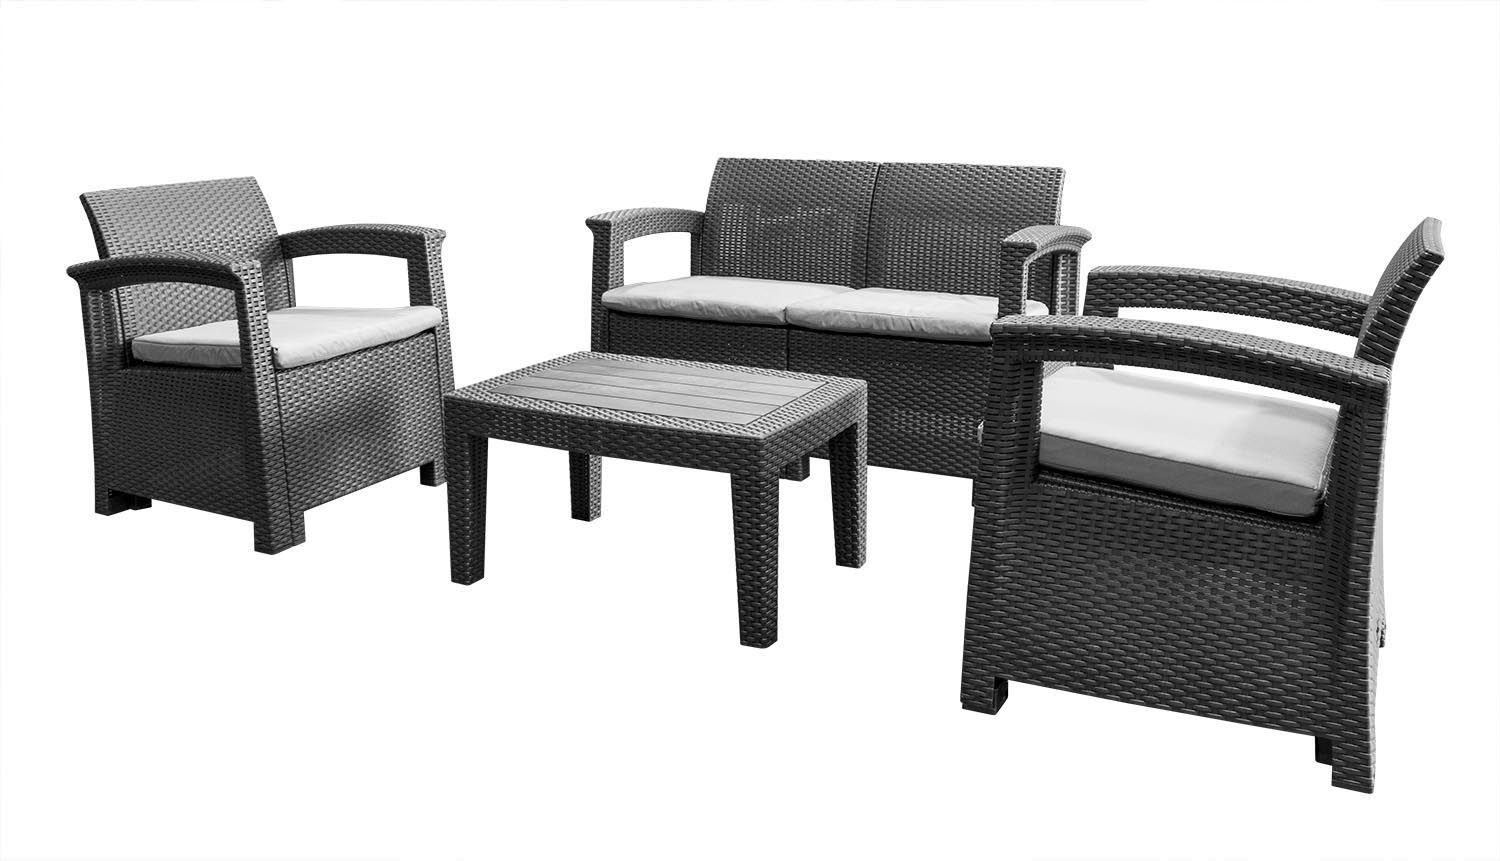 Ashby 10 Seater Grey Rattan Garden Furniture Set  Grey rattan